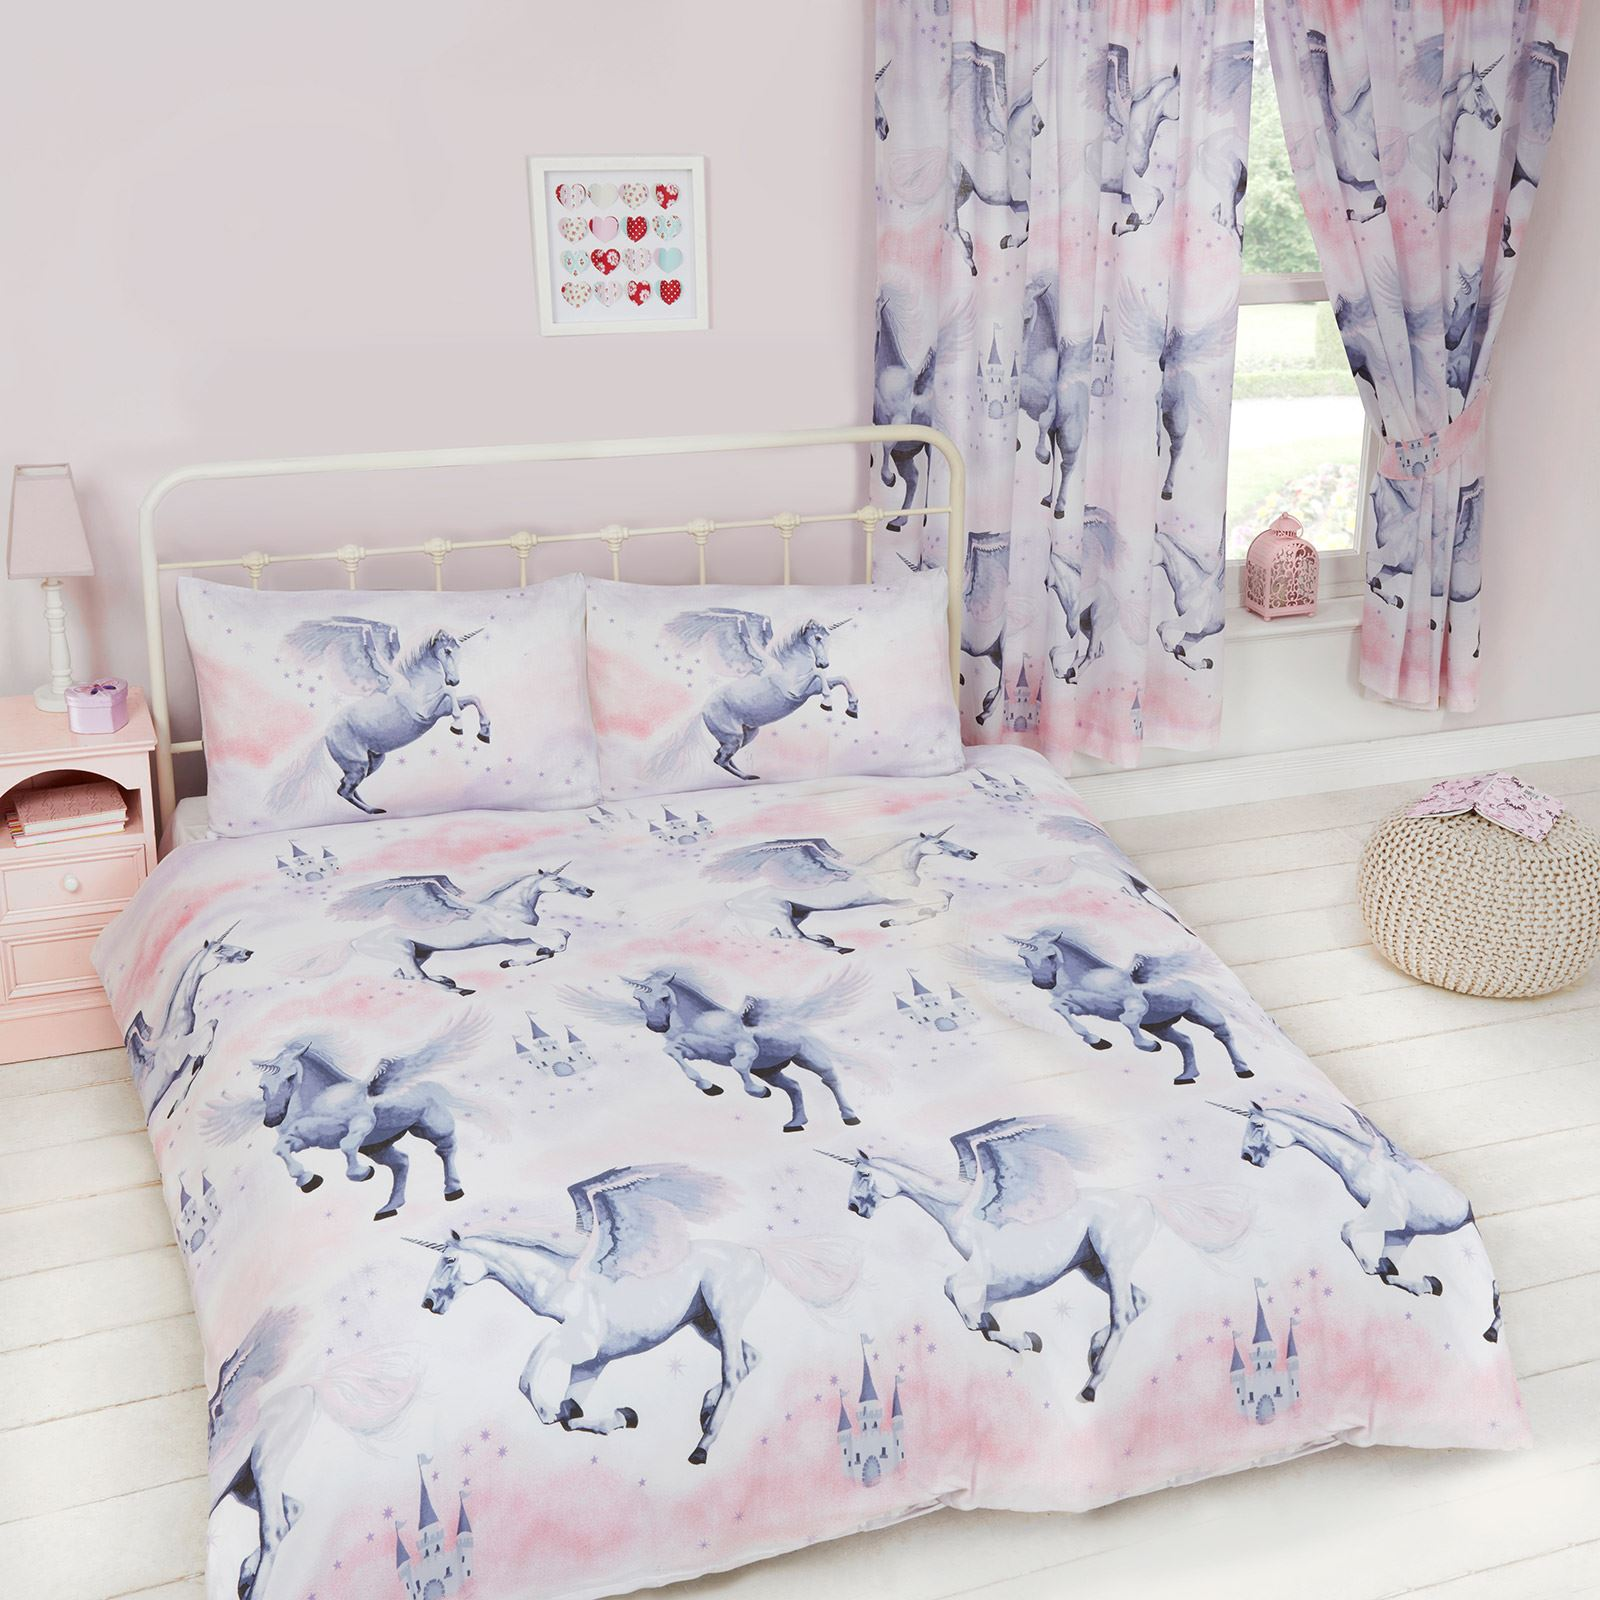 Stardust Unicorn Duvet Cover Set Single Double Junior Curtains